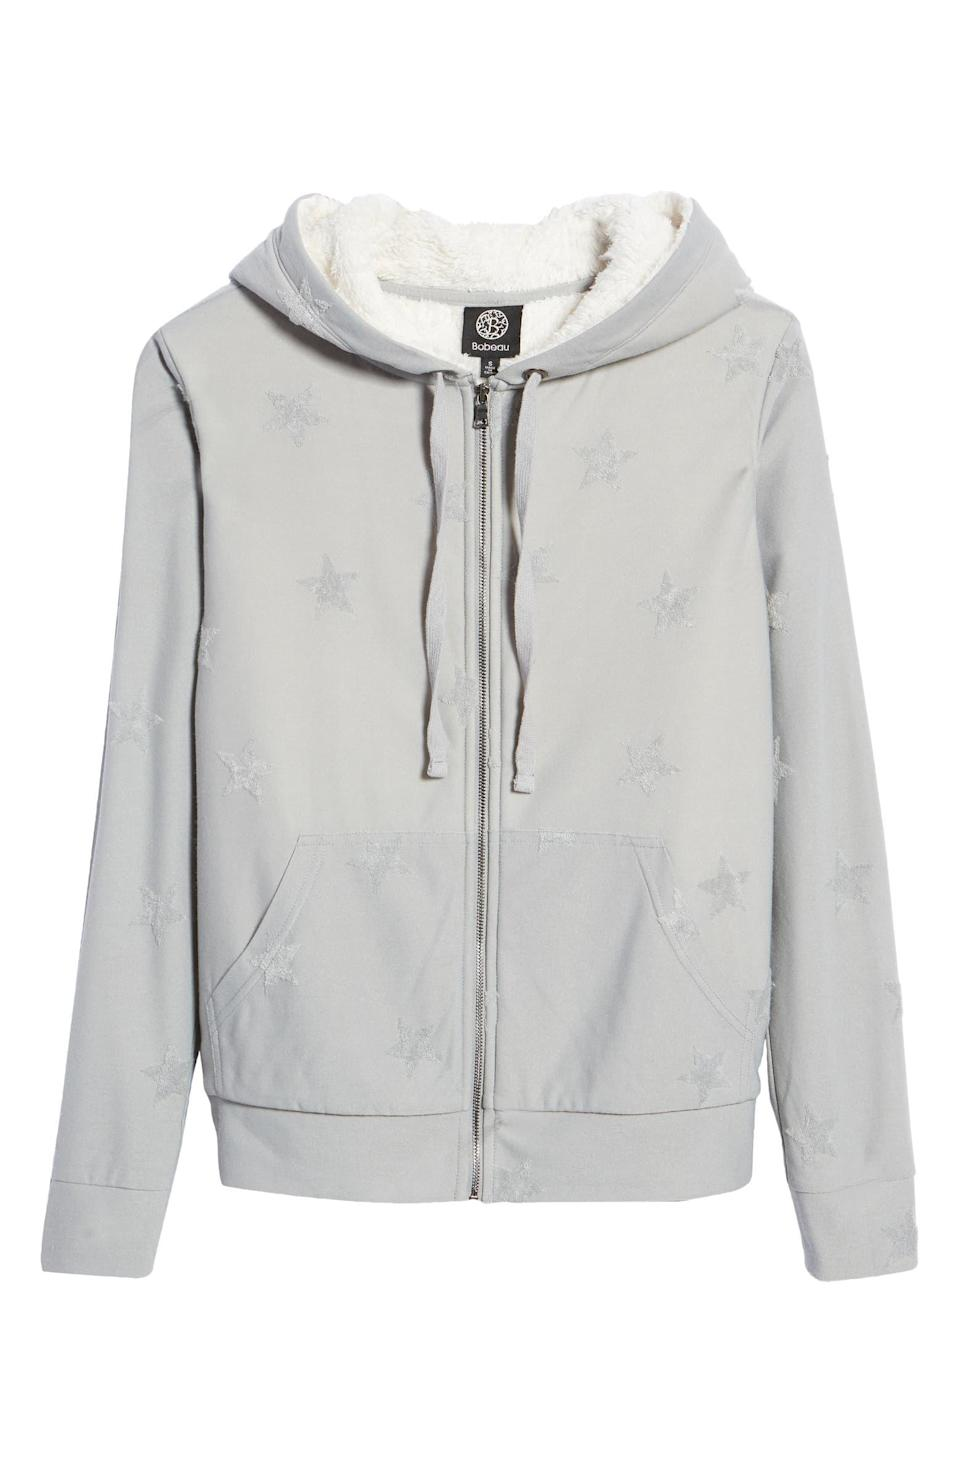 """<p>Feeling cold is completely out of the question with Bobeau's Flocked Zip Hoodie. A thick, plush fleece lining will ensure that no cool breezes hit your body. And what's even better is that the zip front makes it easy to take on and off if you get too toasty. It comes in four colors that each has an embroidered pattern like the subtle stars on this gray one. </p> <p><strong>Sizes available:</strong> XS to XL</p> <p><strong>$59</strong> (<a href=""""https://click.linksynergy.com/deeplink?id=MZ9491VLjxM&mid=1237&u1=AllureCozyLoungewear&murl=https%3A%2F%2Fwww.nordstrom.com%2Fs%2Fbobeau-flocked-zip-hoodie%2F5740941%3F"""" rel=""""nofollow noopener"""" target=""""_blank"""" data-ylk=""""slk:Shop Now"""" class=""""link rapid-noclick-resp"""">Shop Now</a>)</p>"""